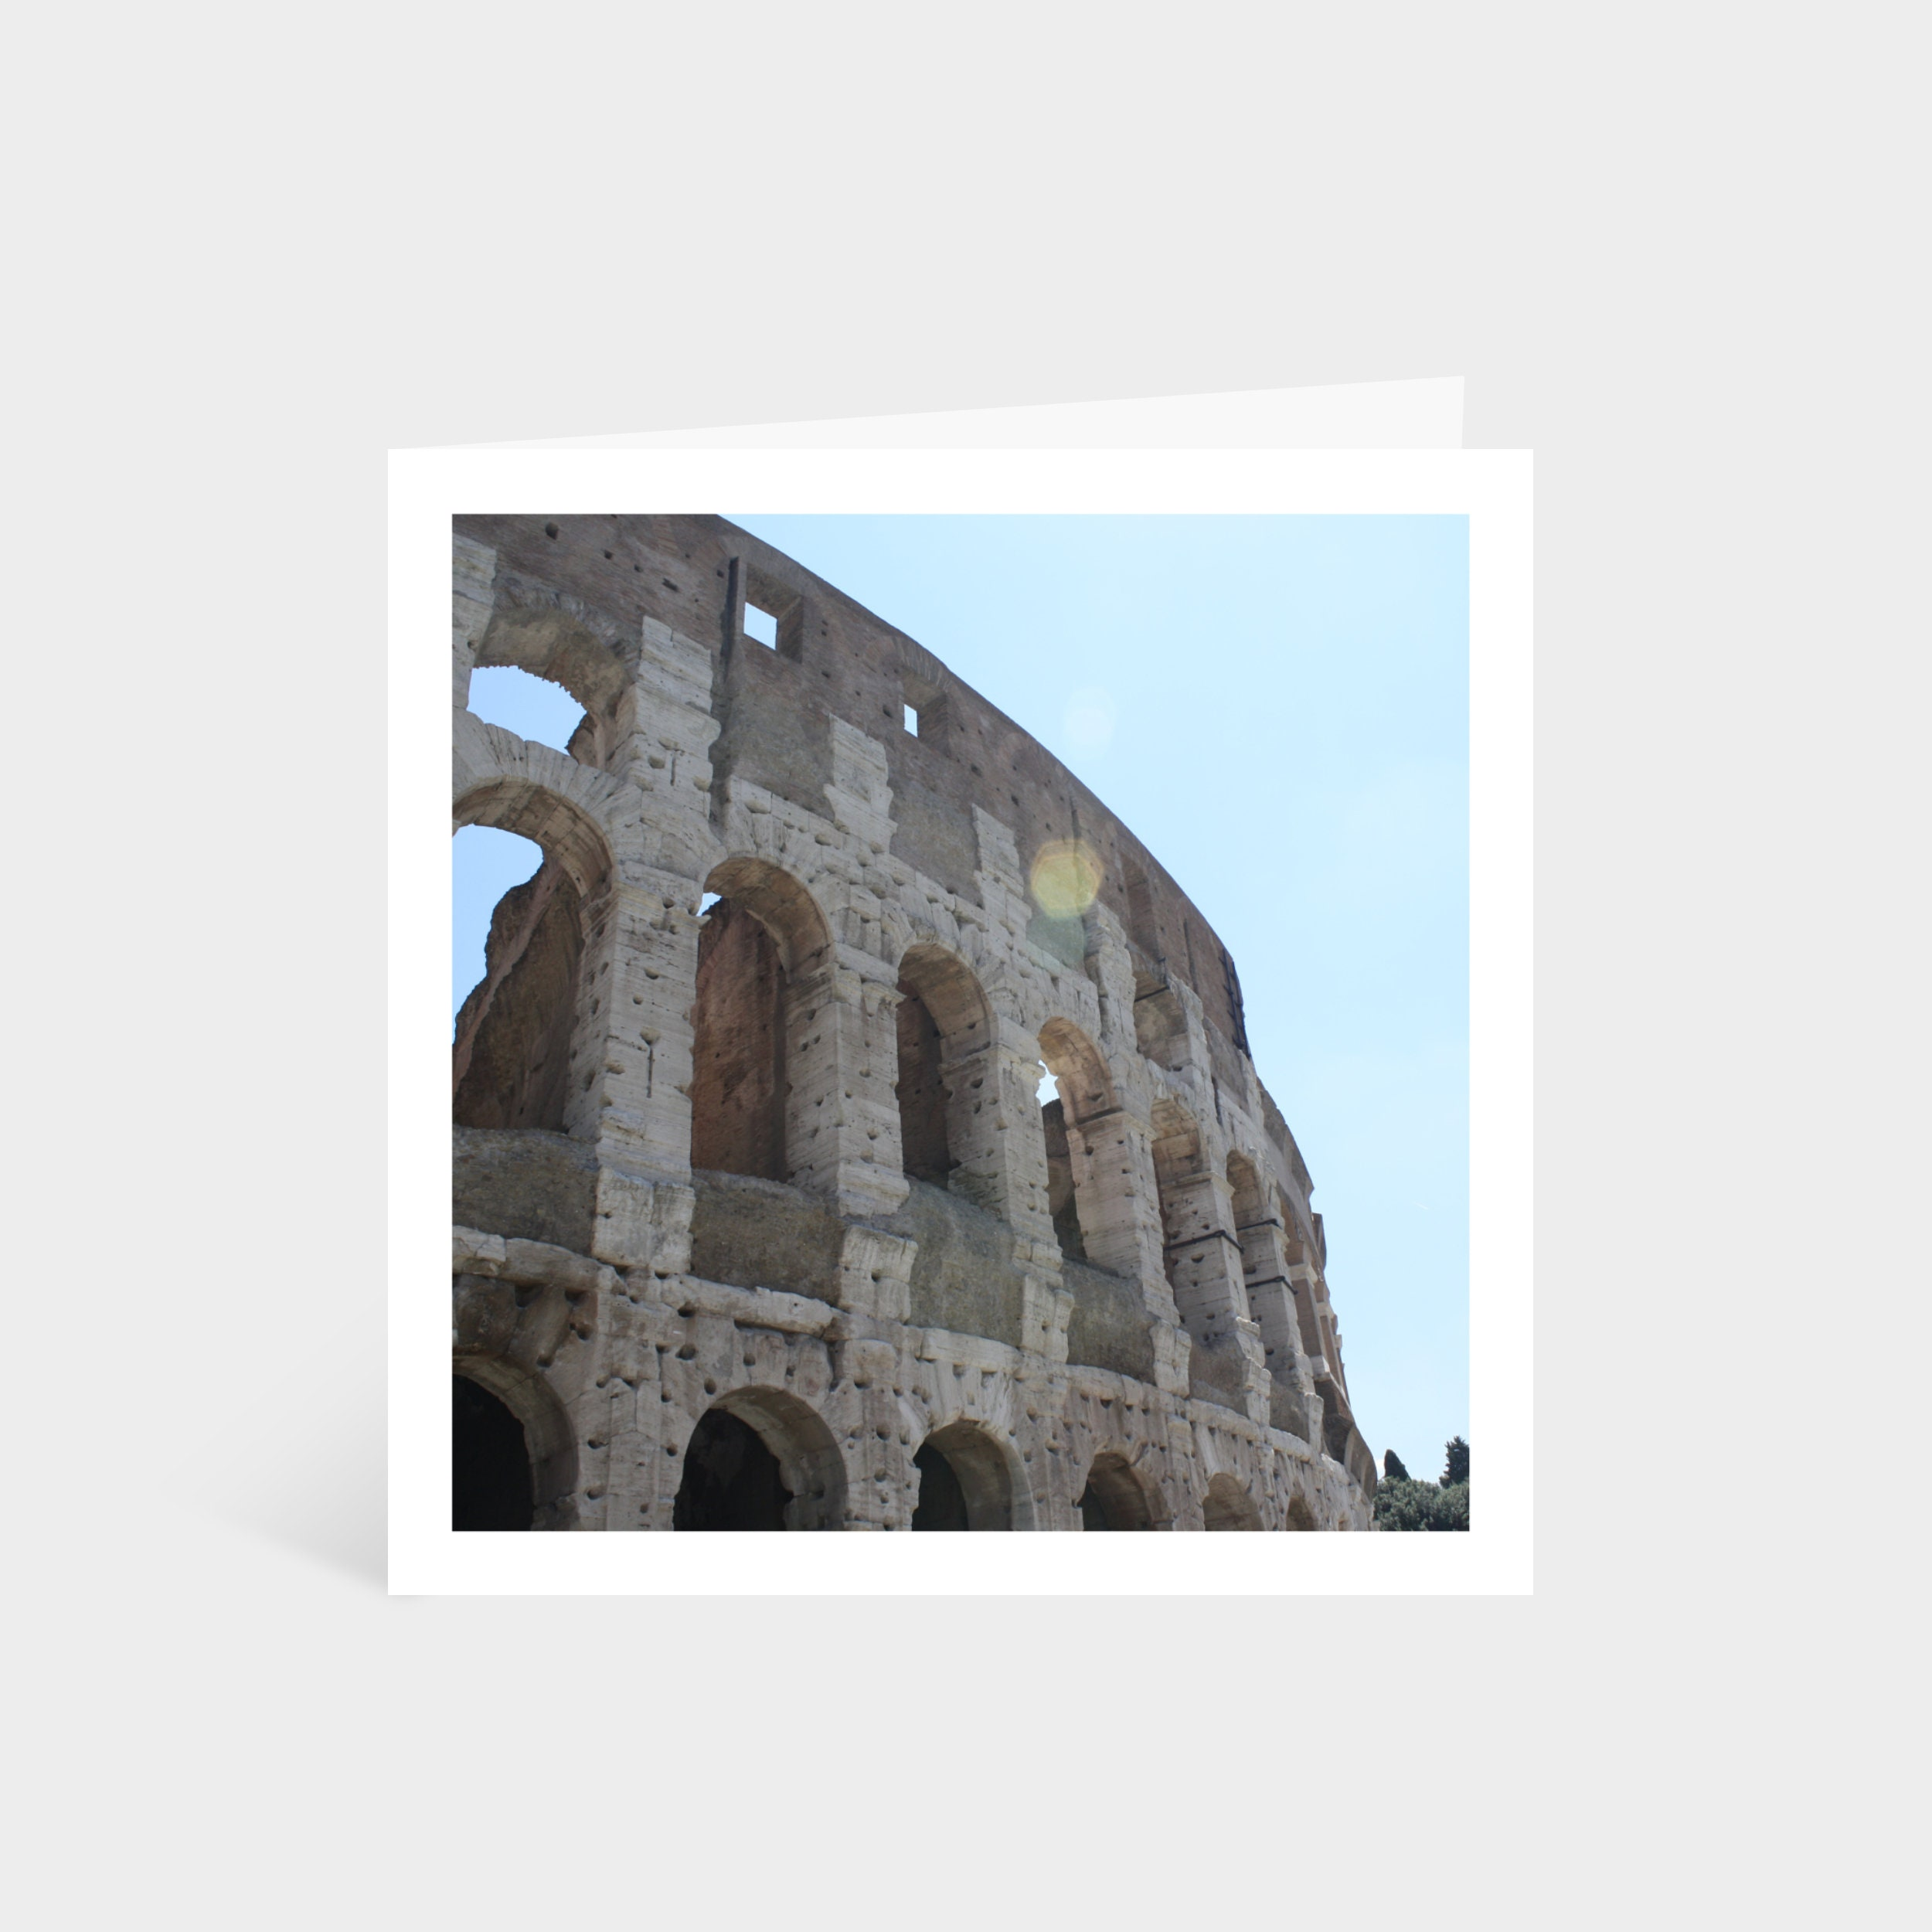 Standing square card with a close-up photo of the colosseum in Rome